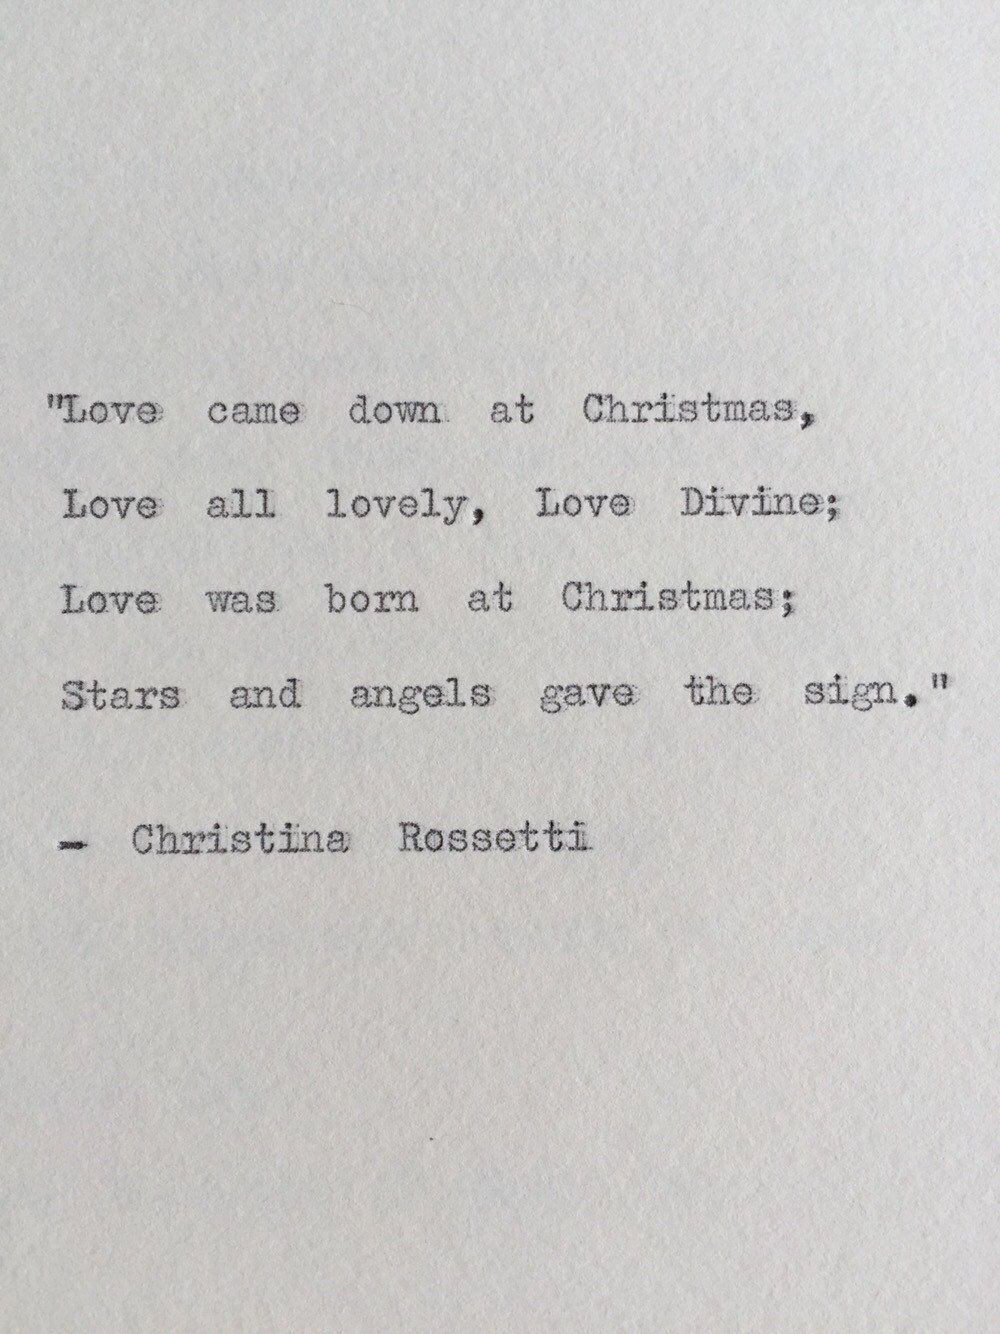 Image of: Cigarette Case Christina Rossetti Christmas Typewriter Quote By Bookishgifts On Etsy Pinterest Christina Rossetti Christmas Typewriter Quote By Bookishgifts On